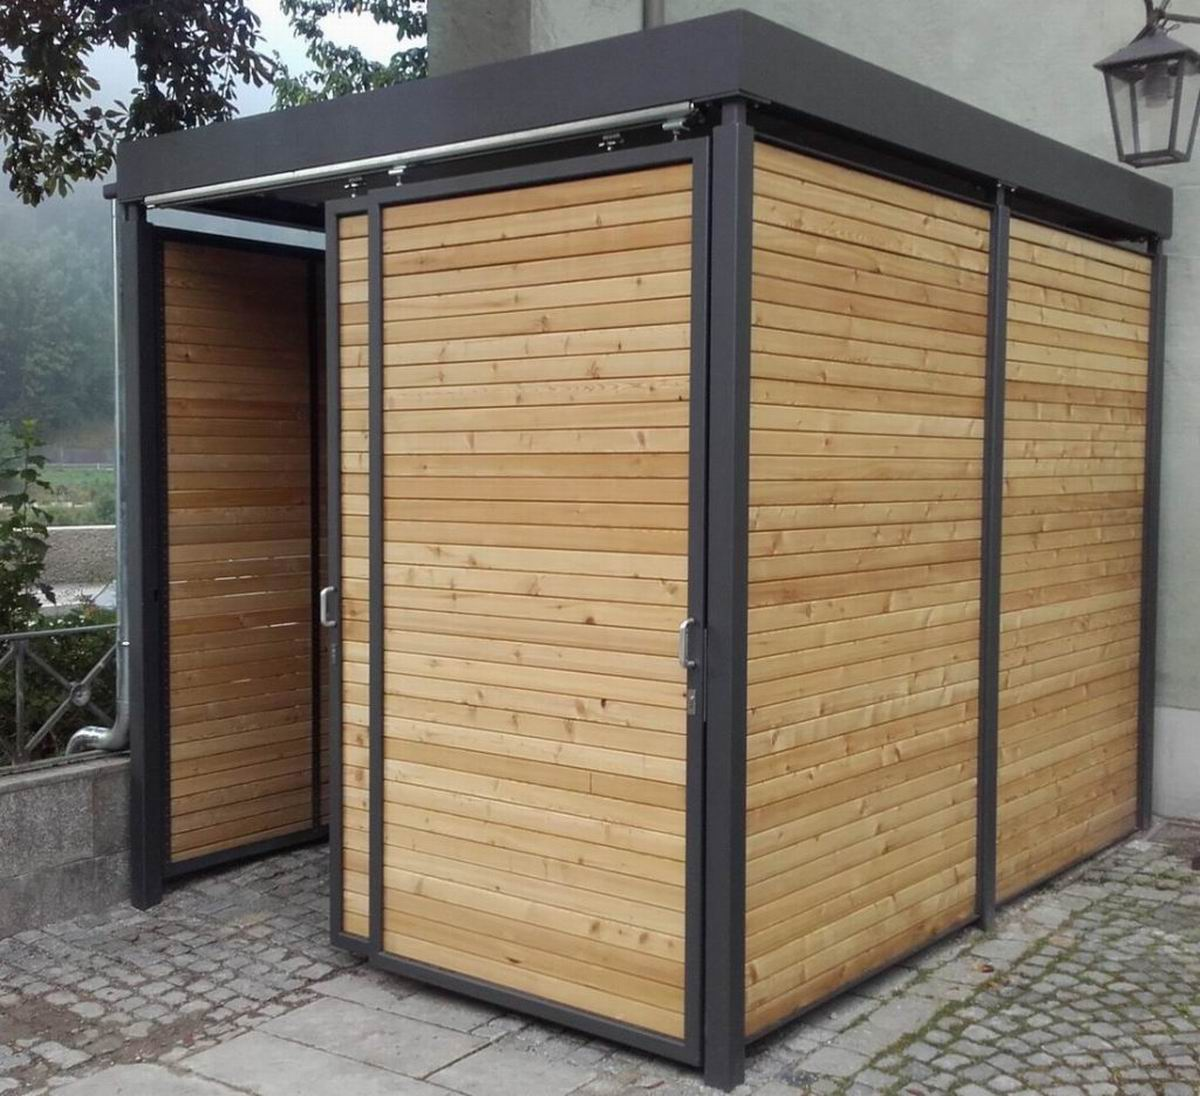 carports carport ger teschuppen gartenhaus m lltonnenhaus fahrradhaus. Black Bedroom Furniture Sets. Home Design Ideas